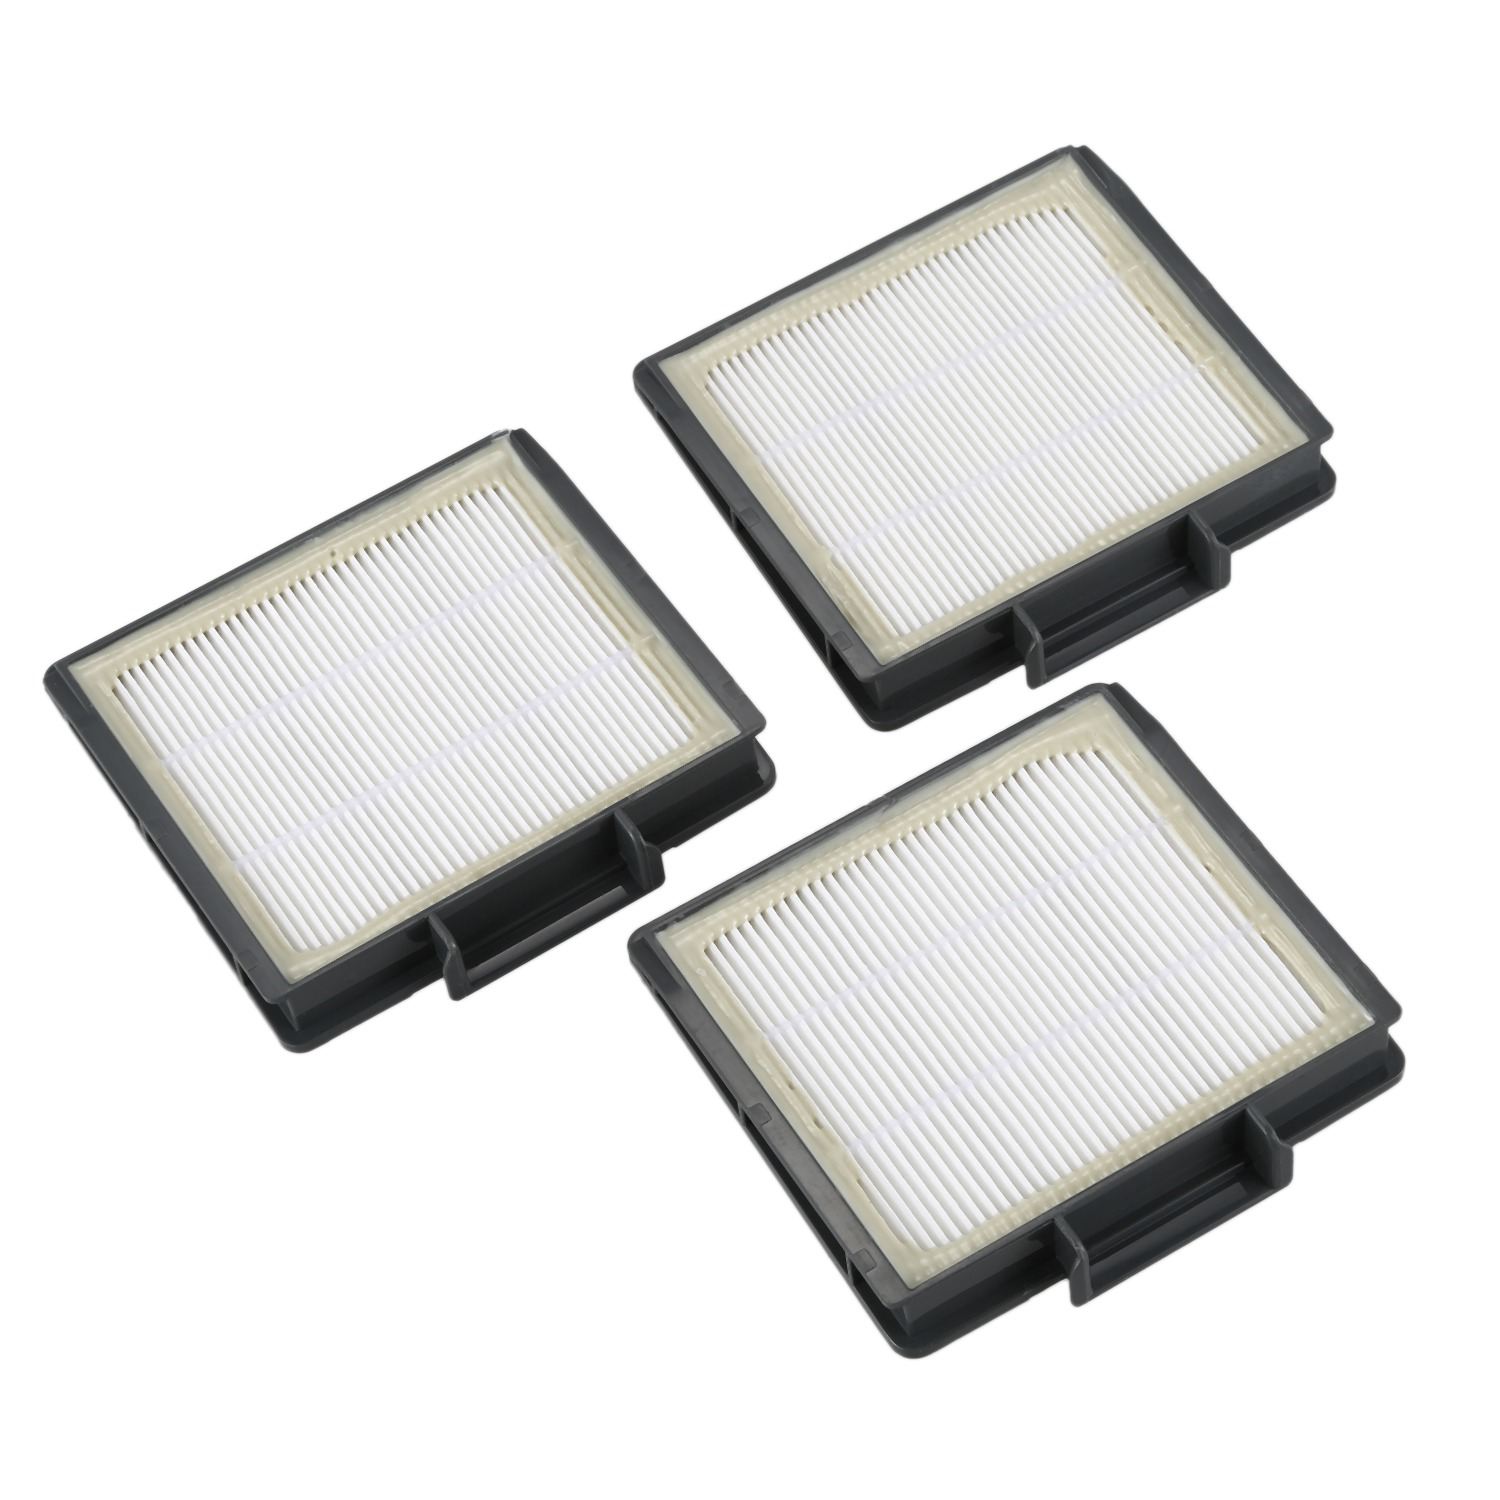 Cleaning Appliance Parts Home Appliance Parts New-3pcs Pre-motor Hepa Filters For Shark Ion Robot Rv700_n Rv720_n Rv850 Rv851wv Rv850brn/wv Vacuum Cleaner Part Fit # Rvffk9